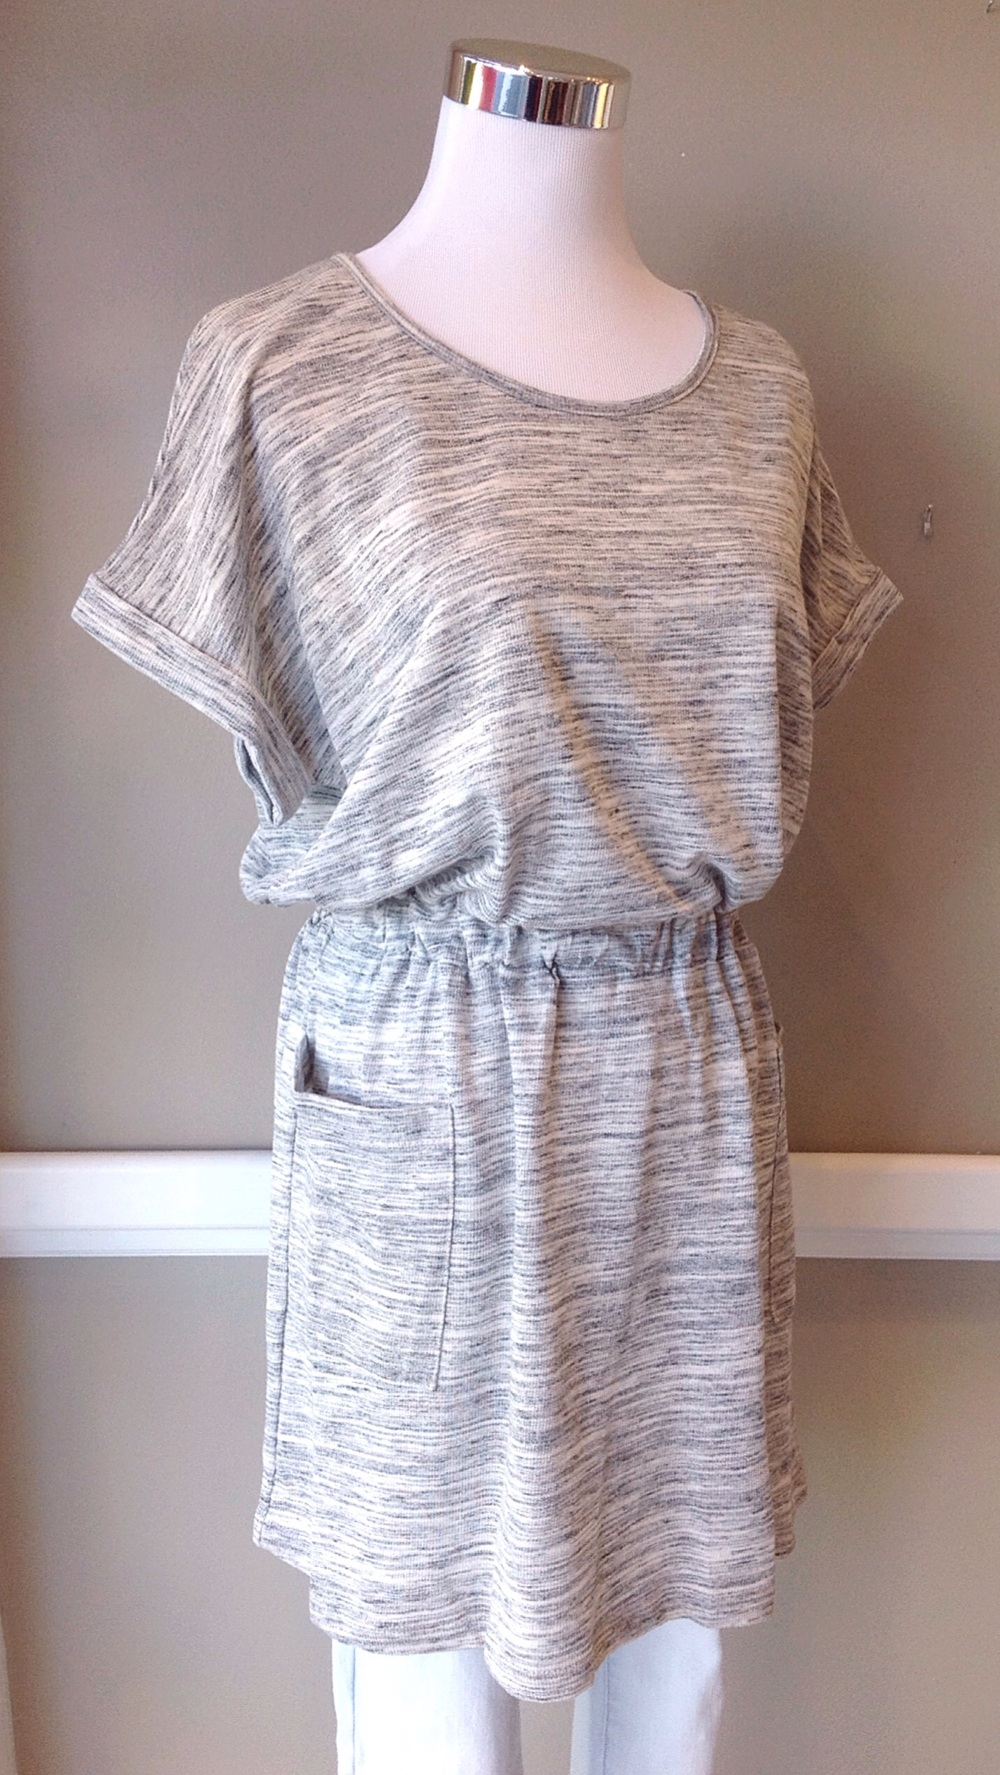 Lightweight knit tunic with elastic waist and patch pockets in off-white/grey, $34